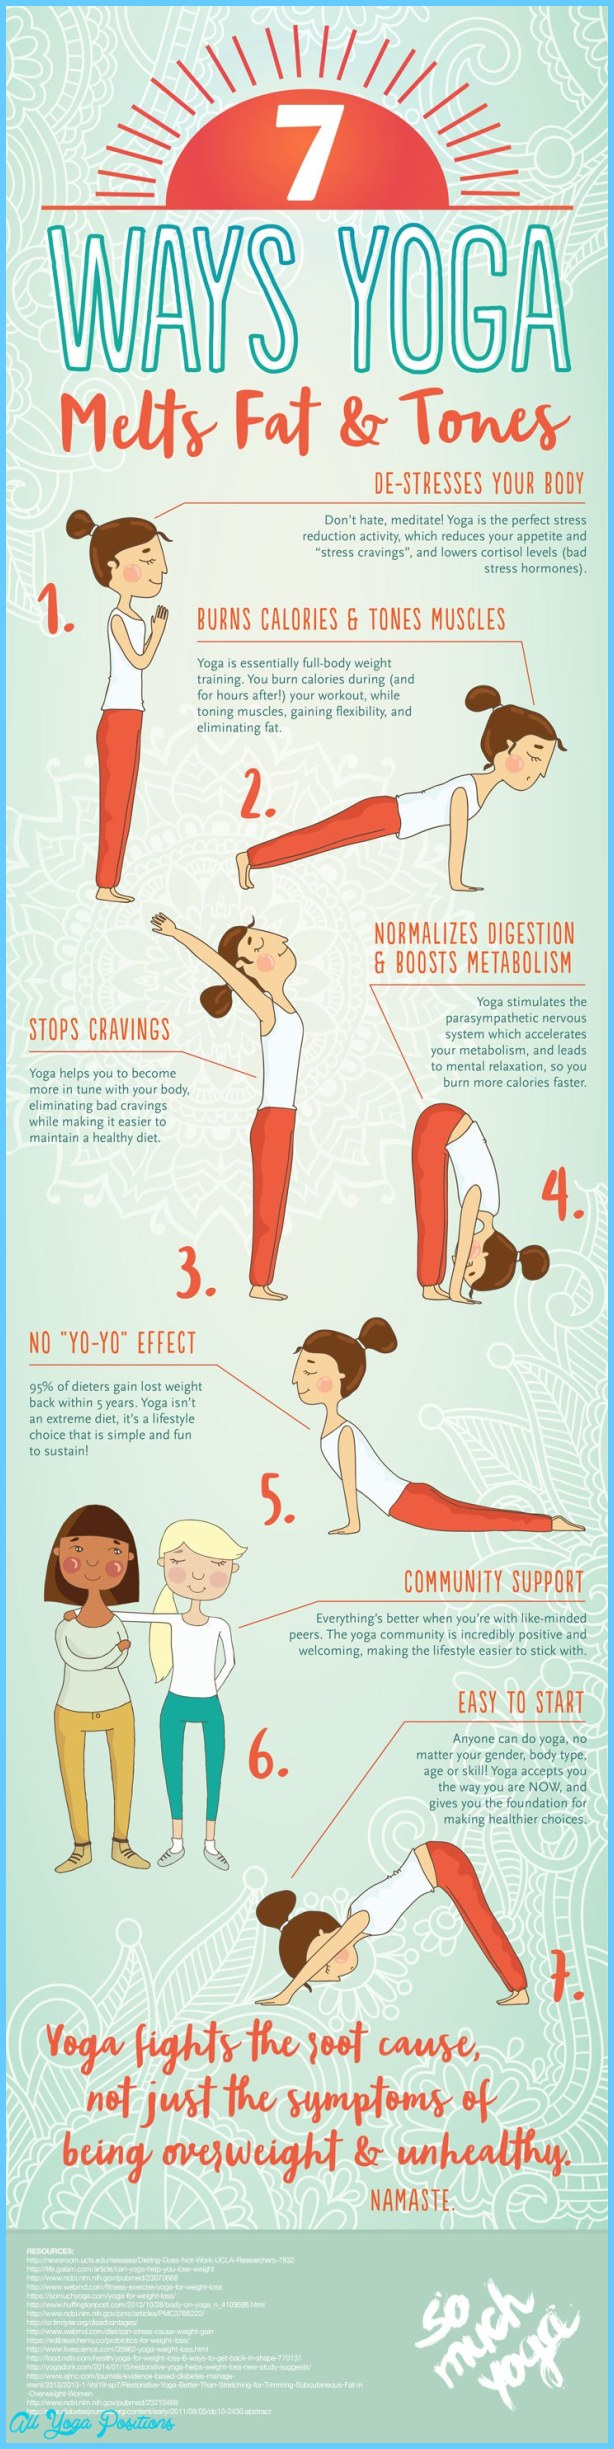 New yoga poses for weight loss _23.jpg